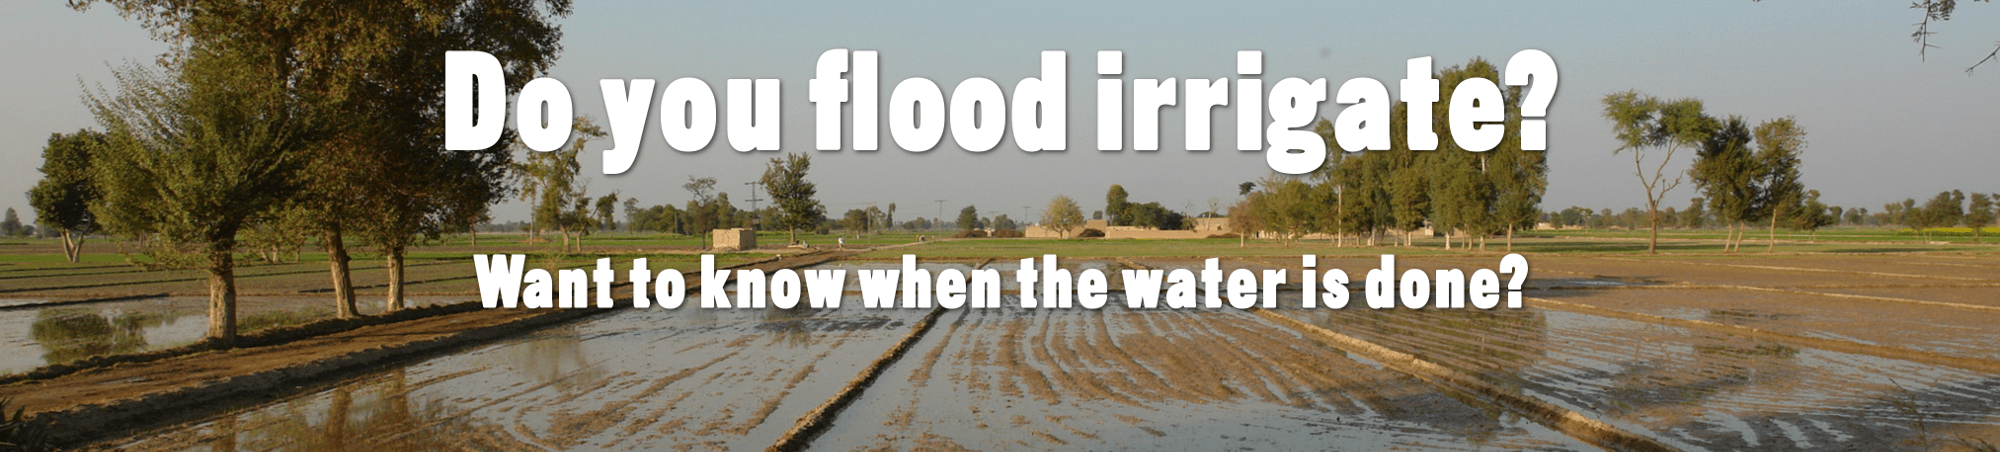 Do you flood irrigate